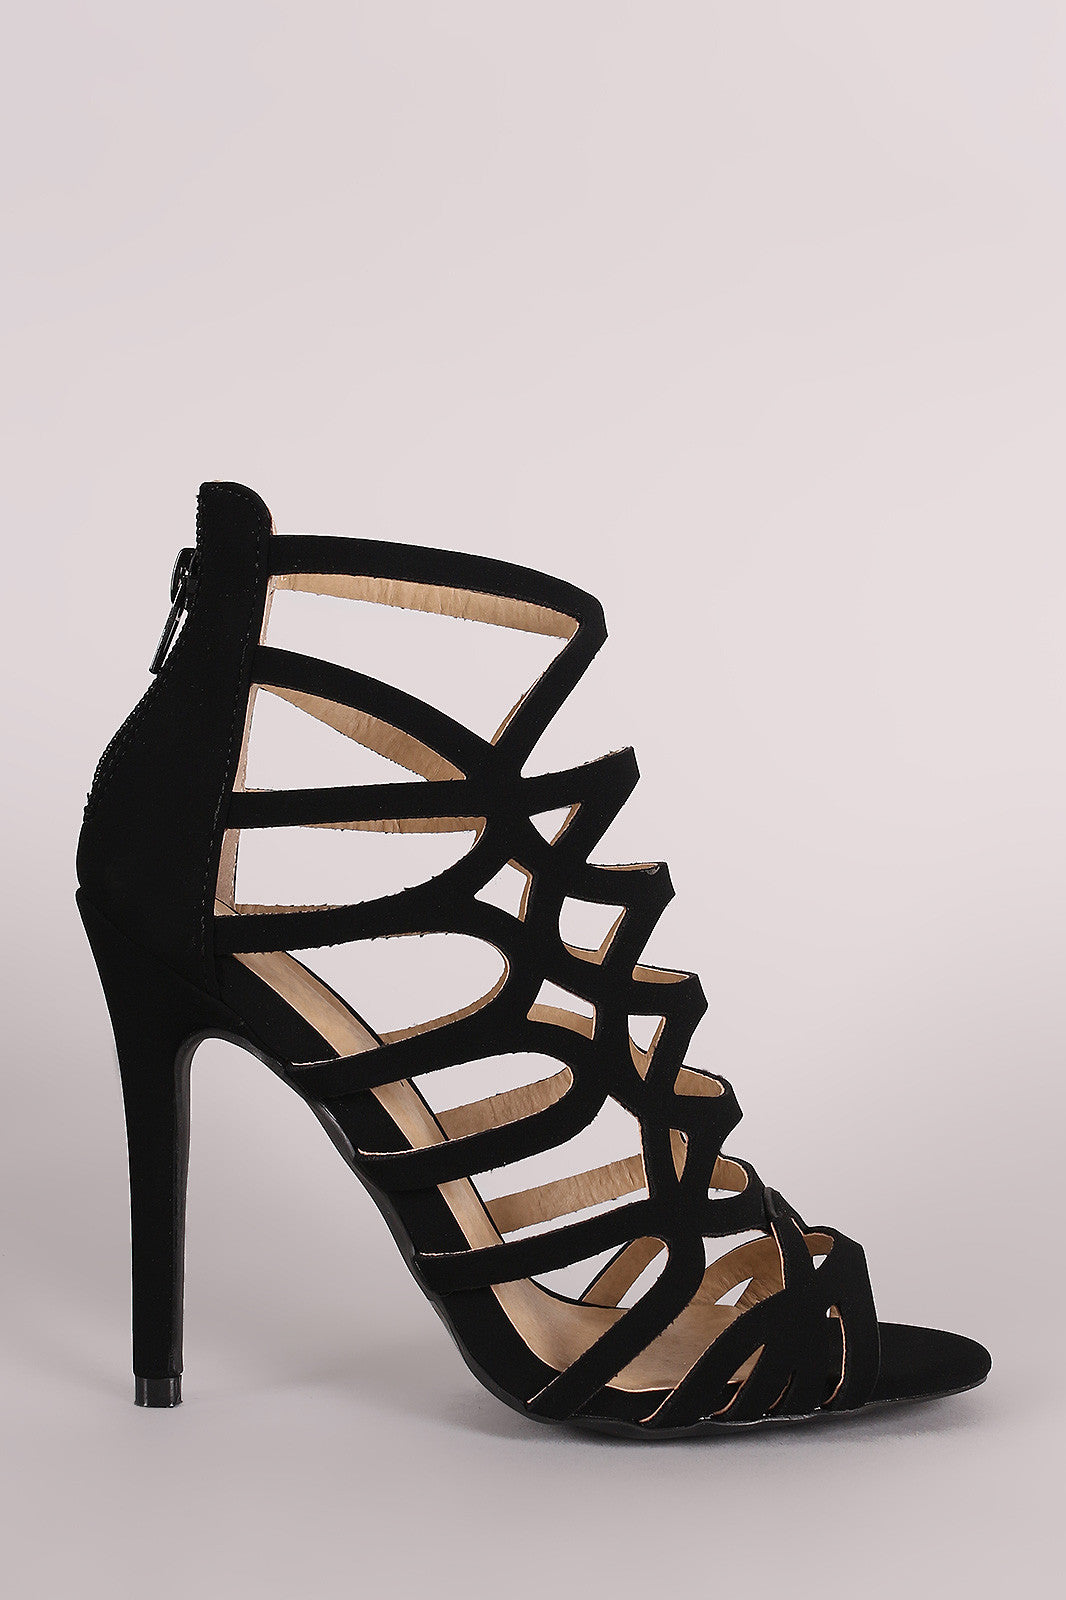 Qupid Nubuck Strappy Caged Stiletto Heel - Thick 'N' Curvy Shop - 4